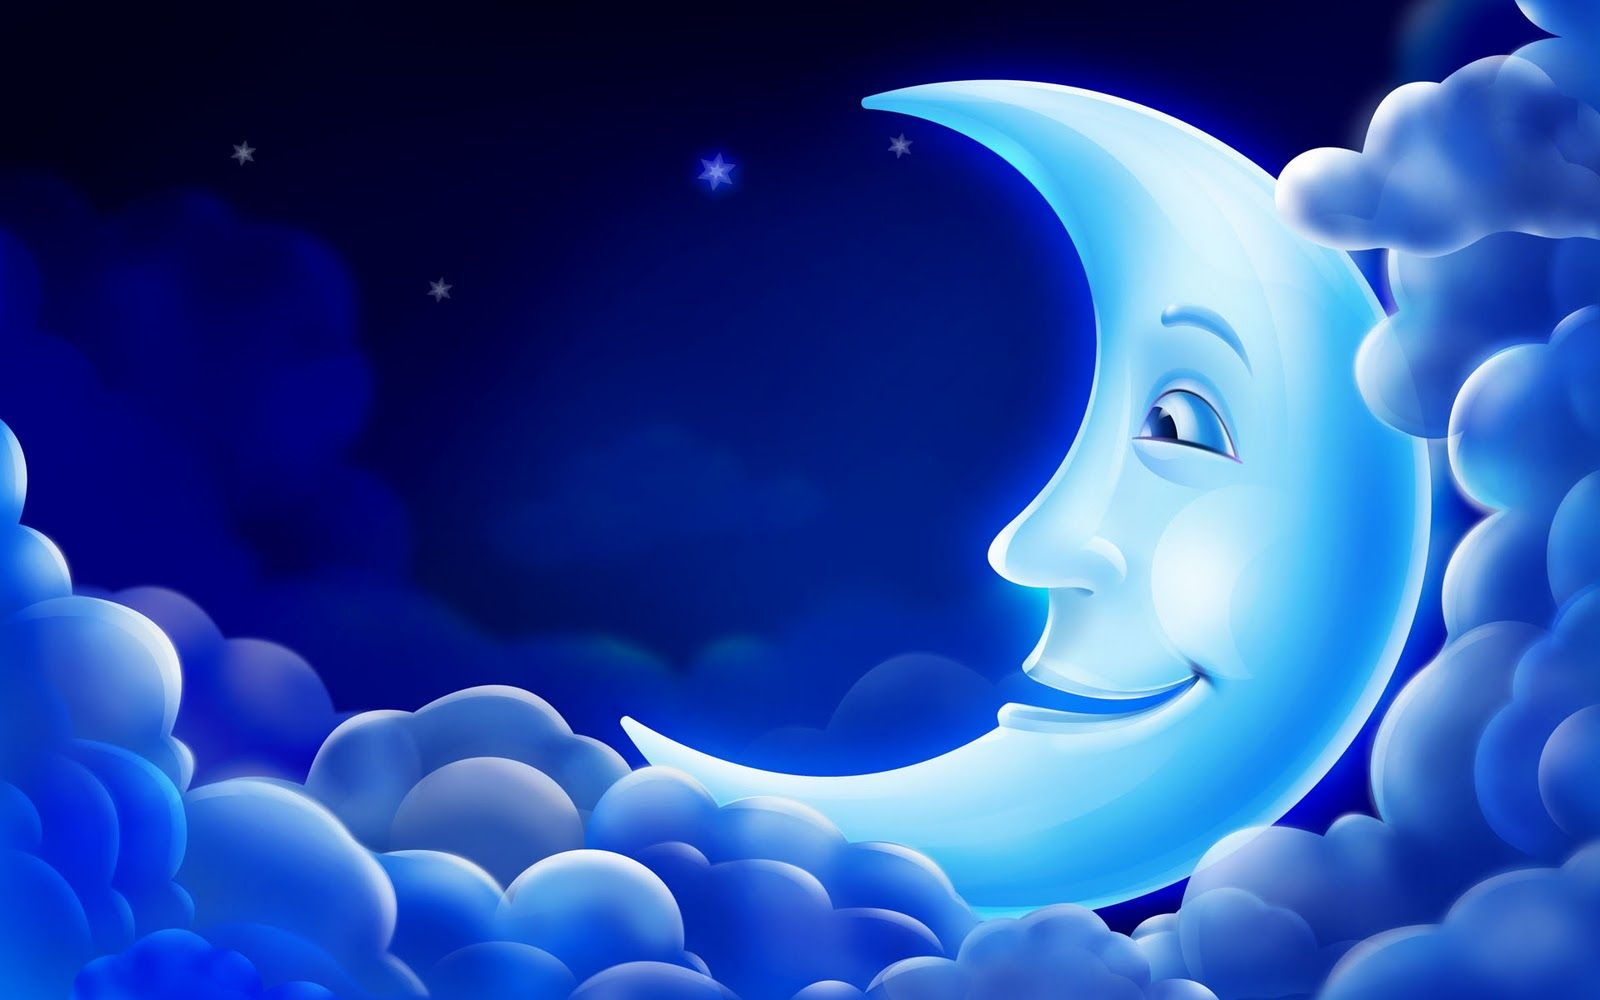 animated gifs CG 3D Animation PC Background blue moon smile 1600x1000